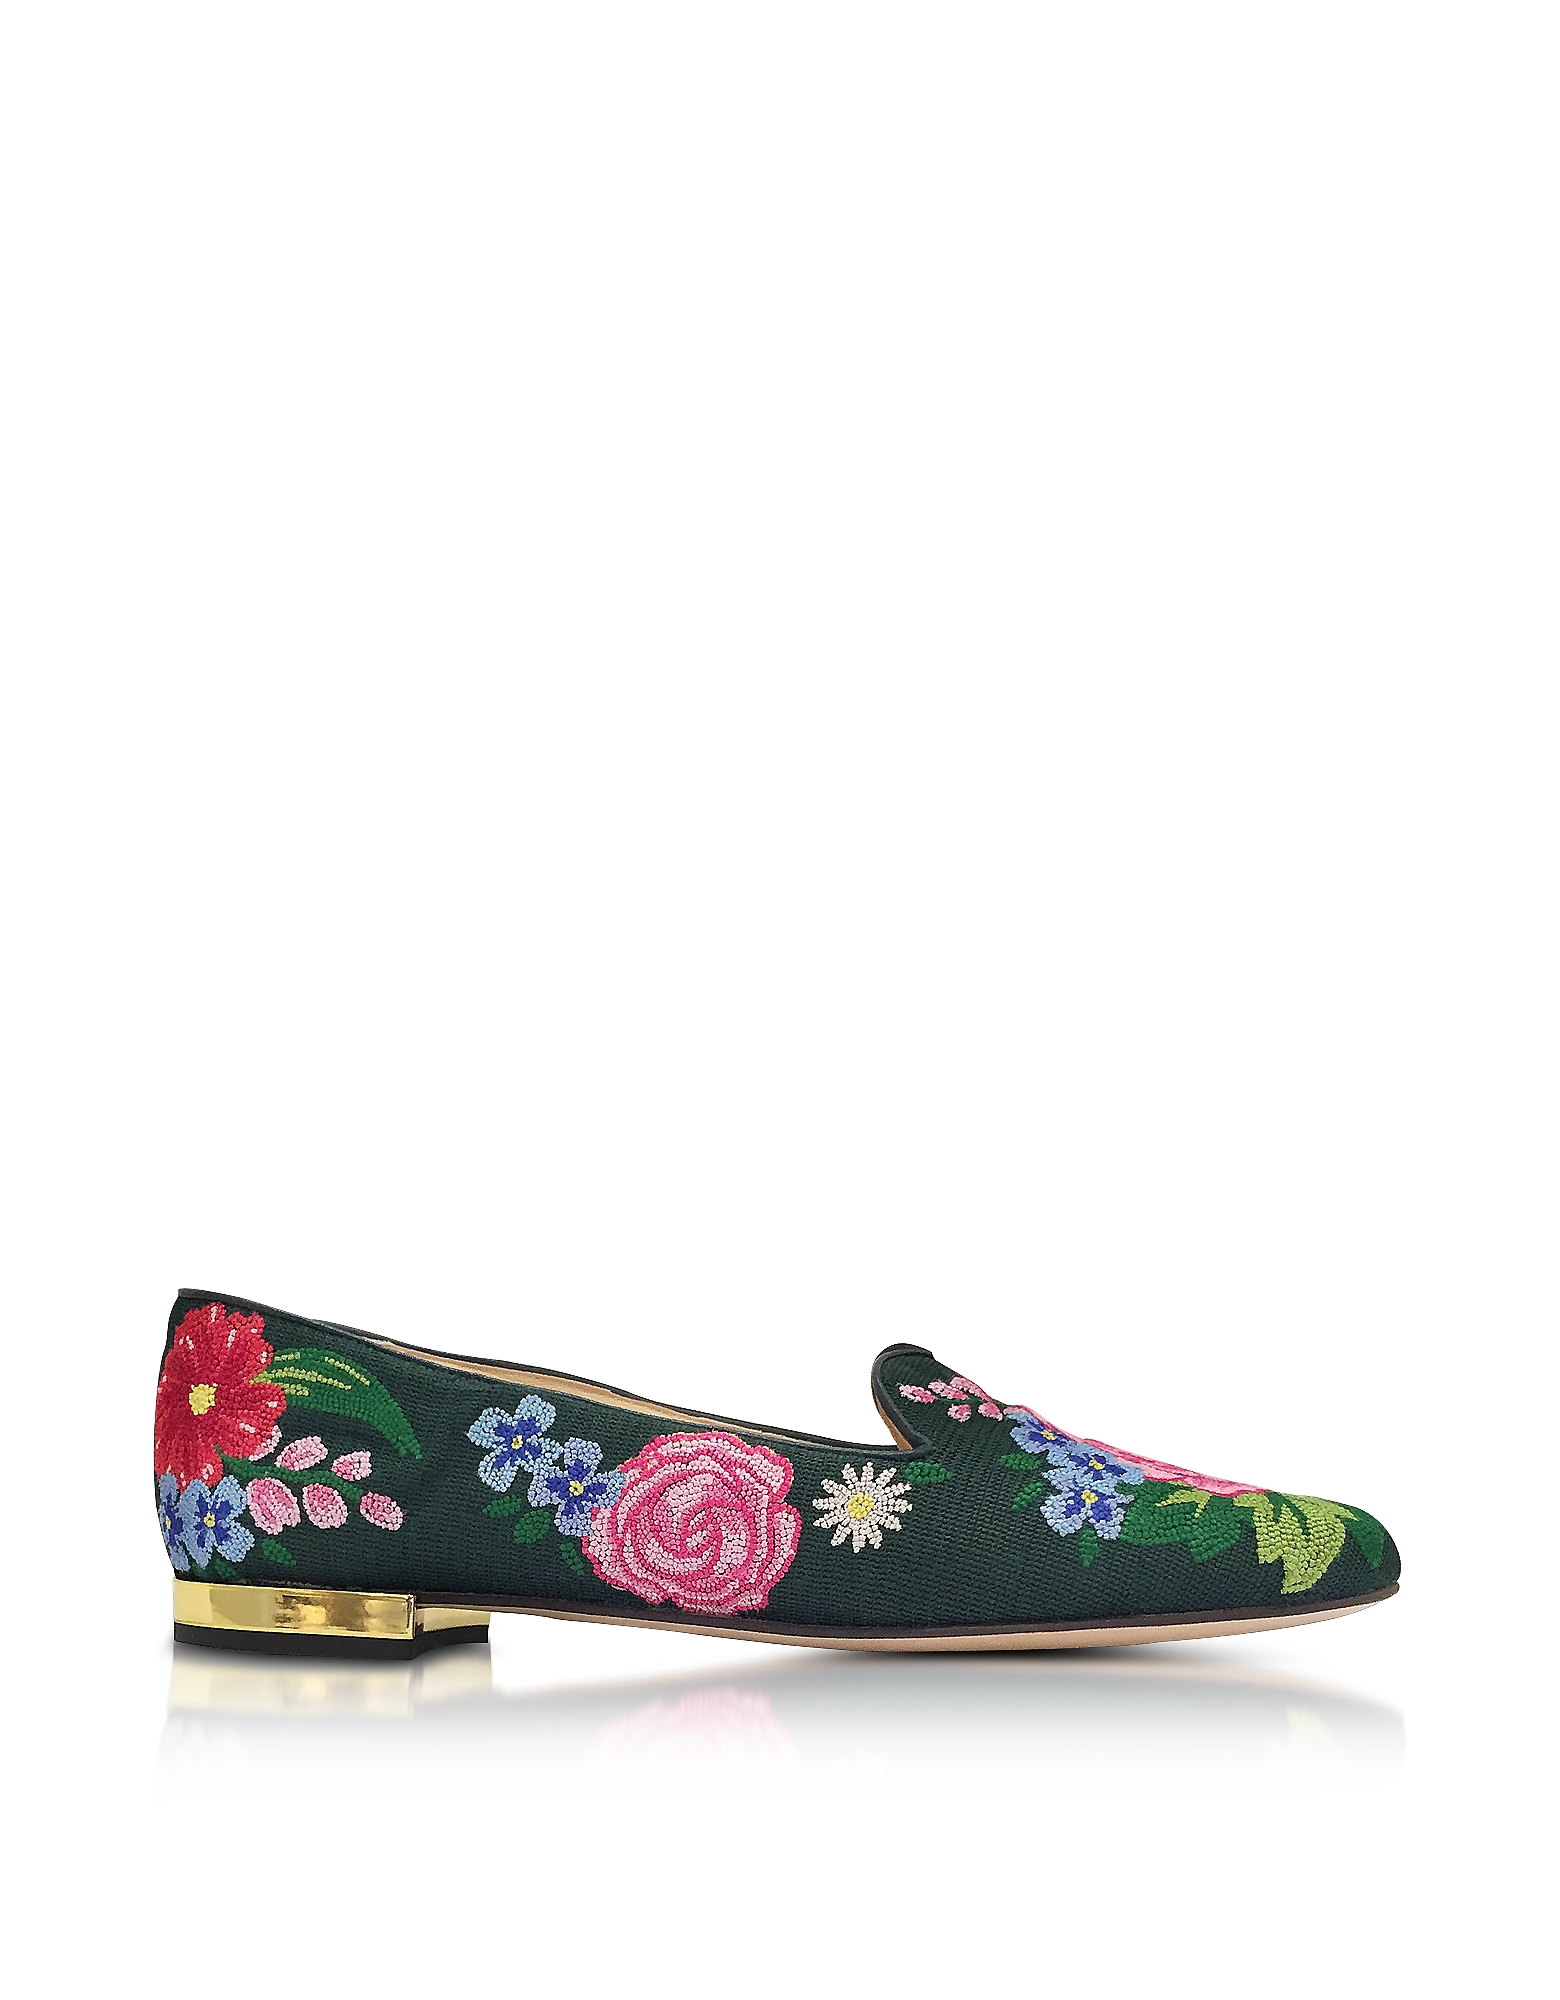 Charlotte Olympia Rose Garden Multicolor Embroidered Canvas Slipper